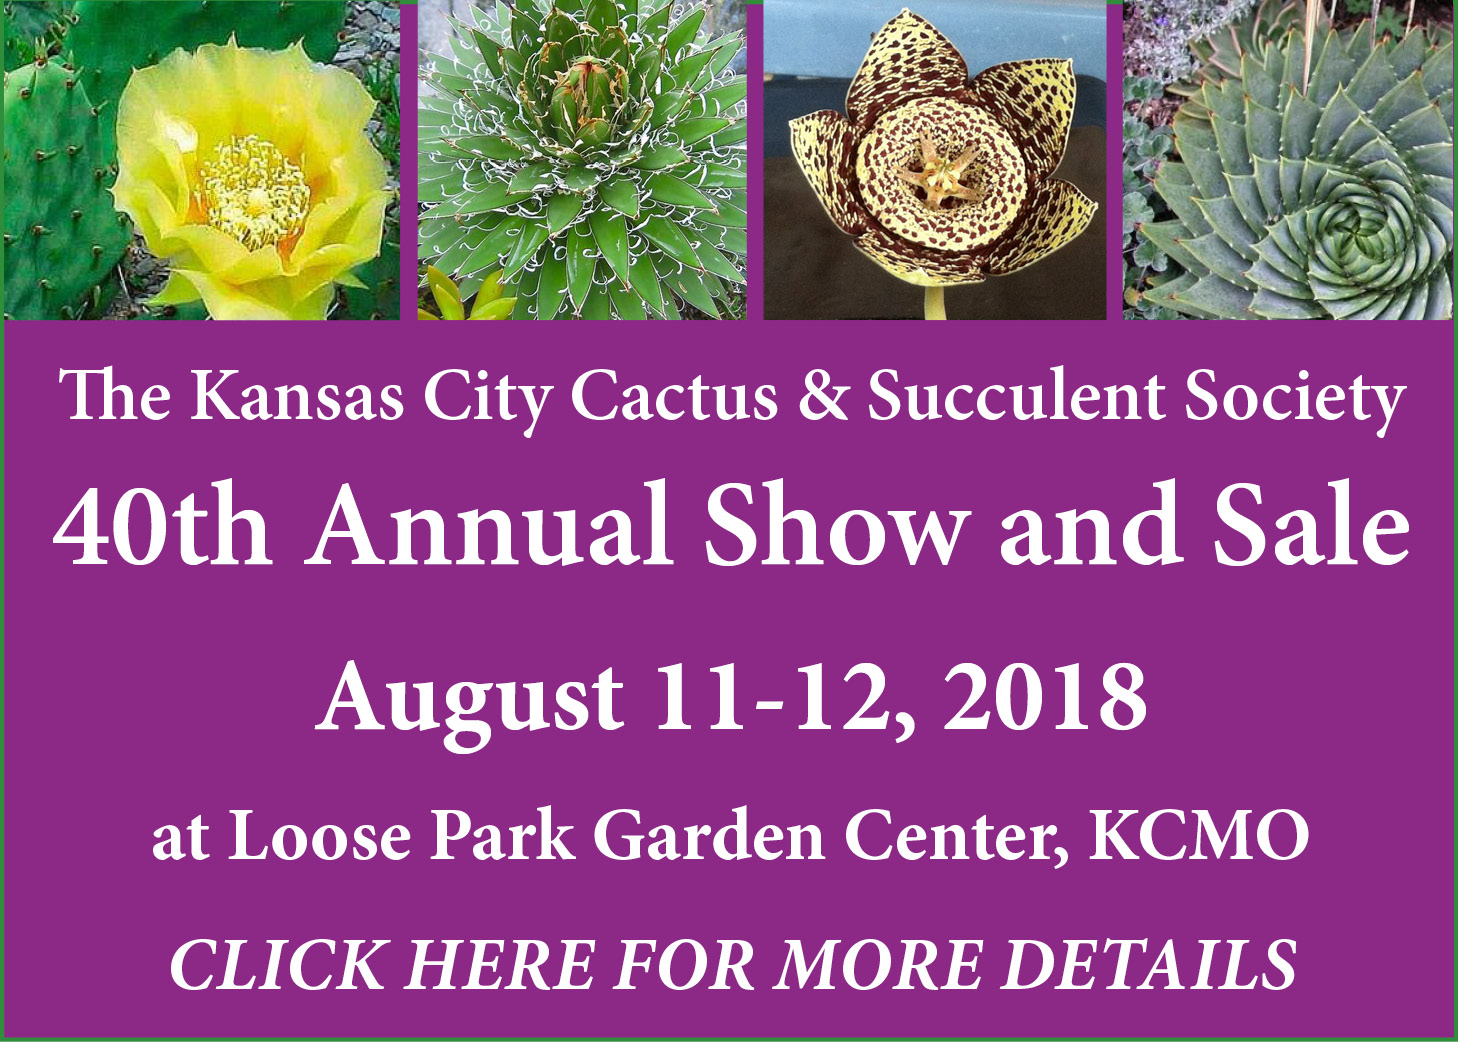 Kansas City Cactus & Succulent Society